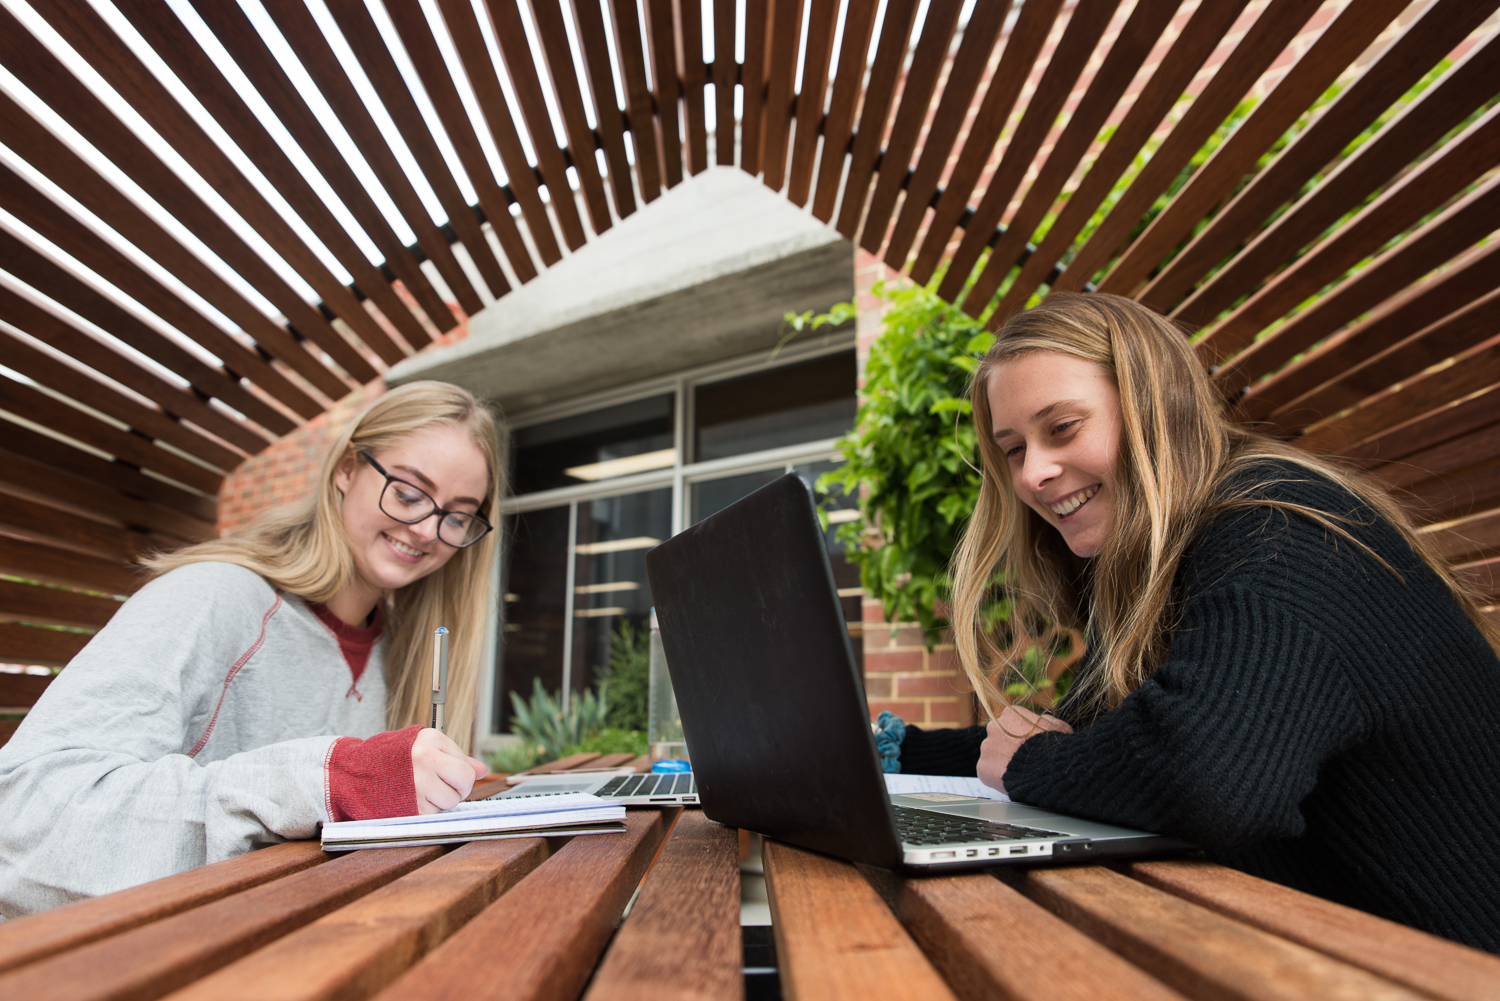 Perth Commercial Advertising Photographer | Curtin University workstation